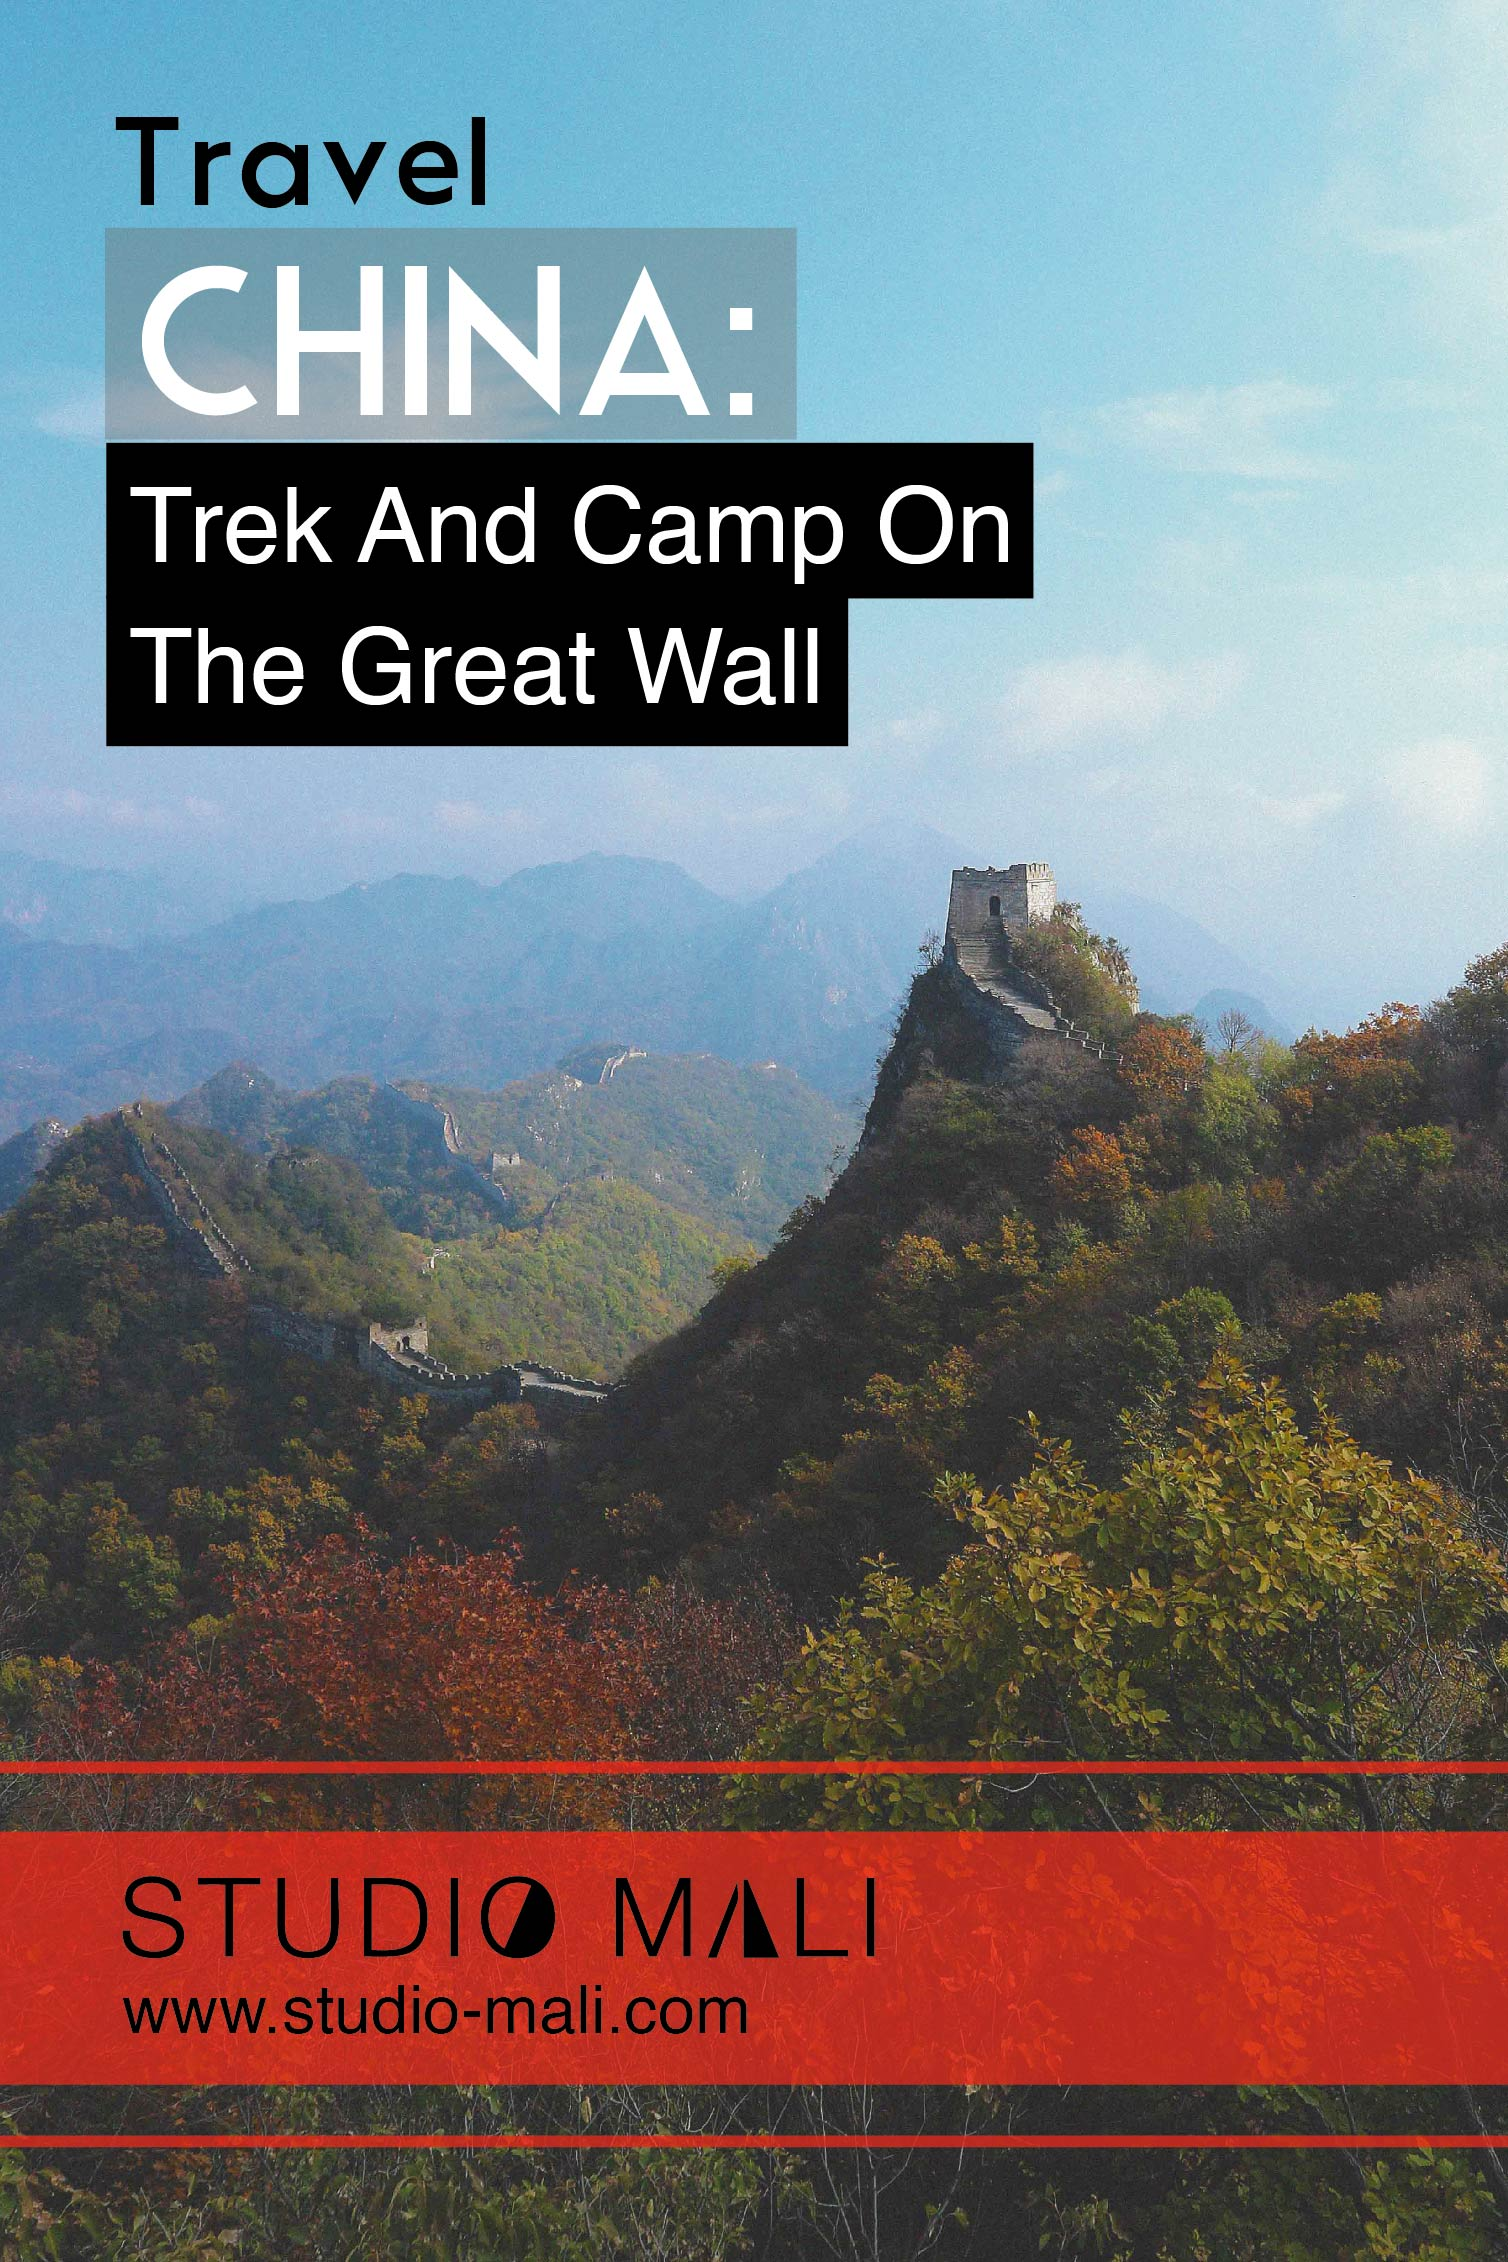 Trek and Camp on the Great Wall, by Studio Mali